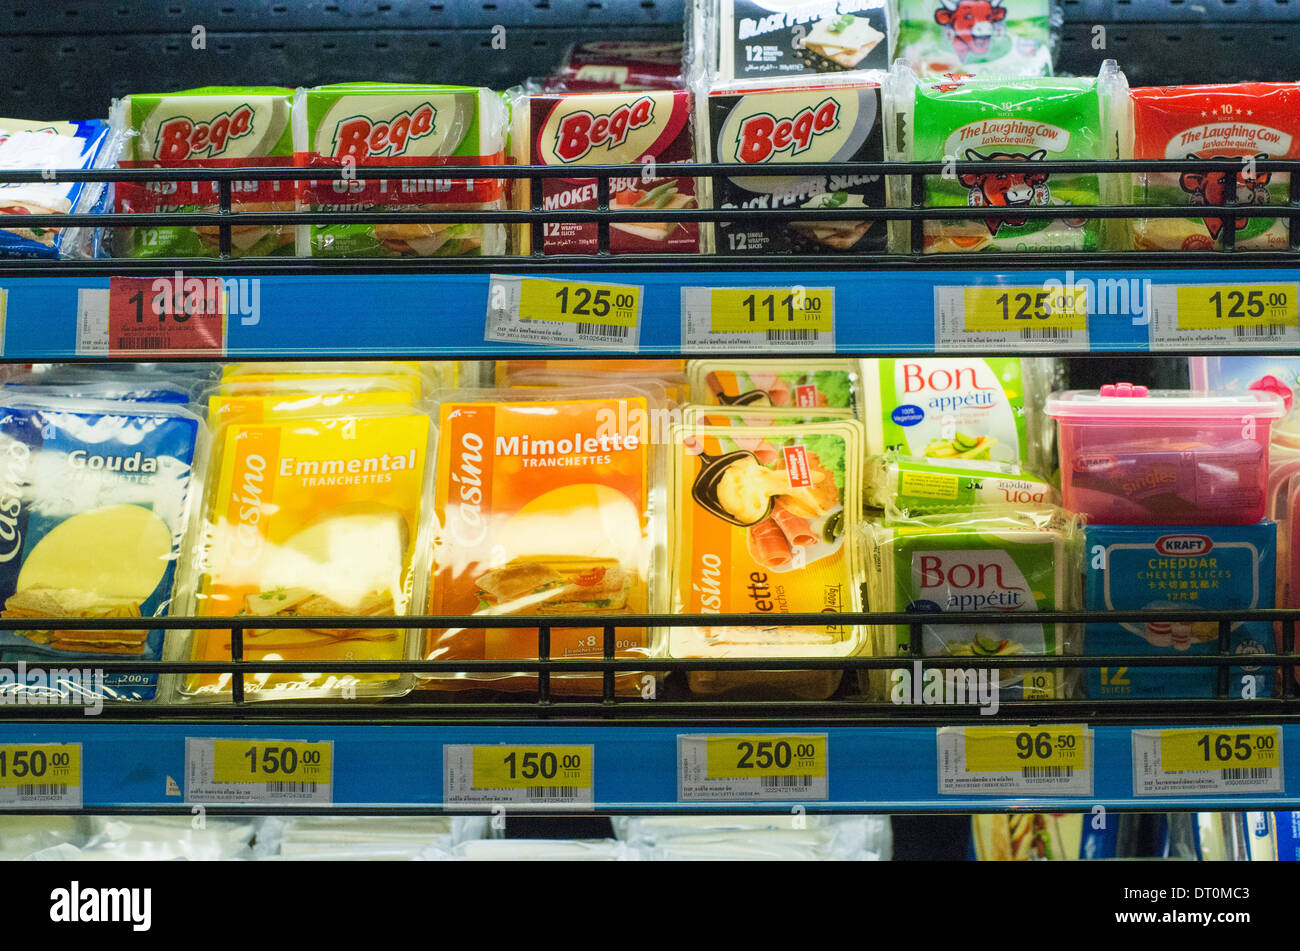 variety of cheese products available on shelf of supermarket